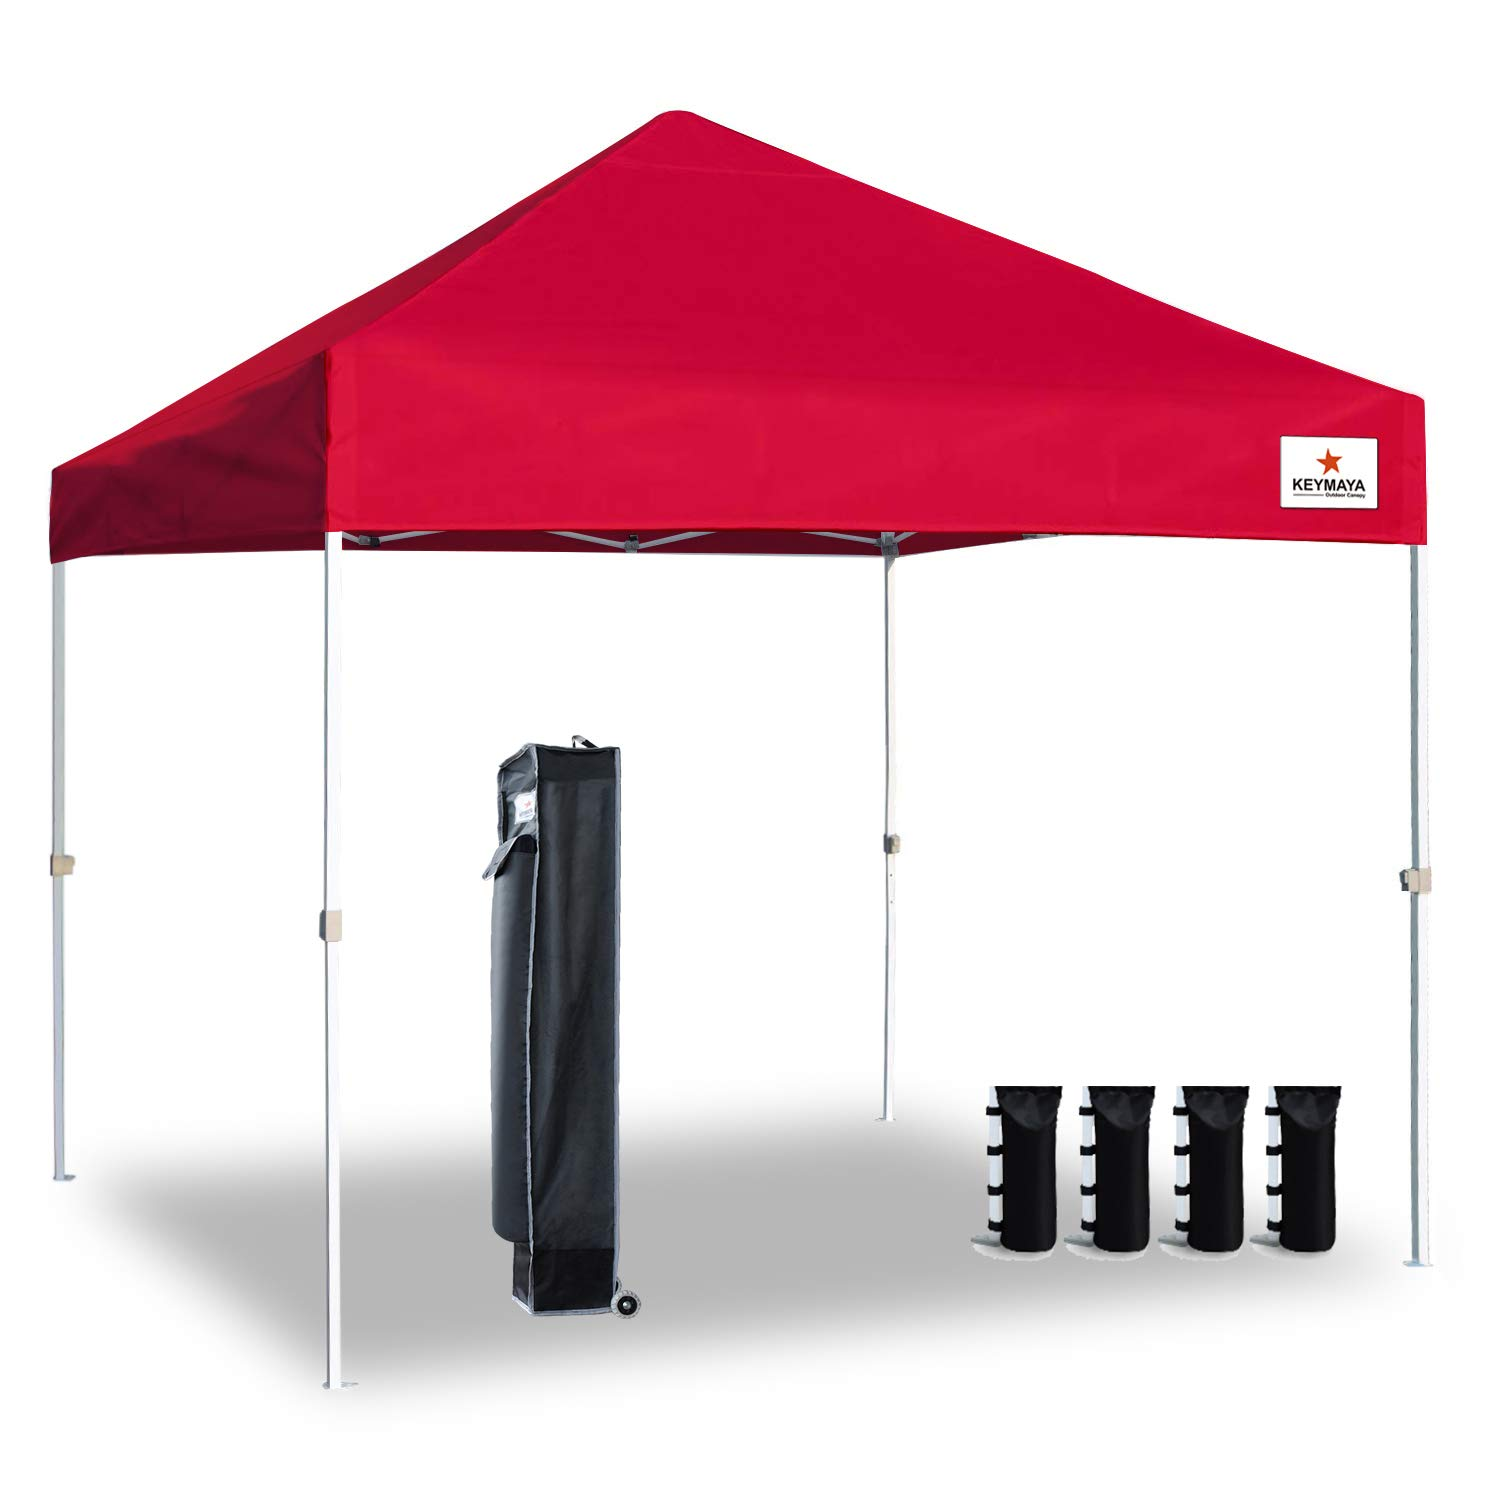 Keymaya 10'x10' Ez Pop Up Canopy Tent Commercial Instant Shelter Canopies Bonus Heavy Duty Weight Bag 4-pc Pack (10x10, A# Red)